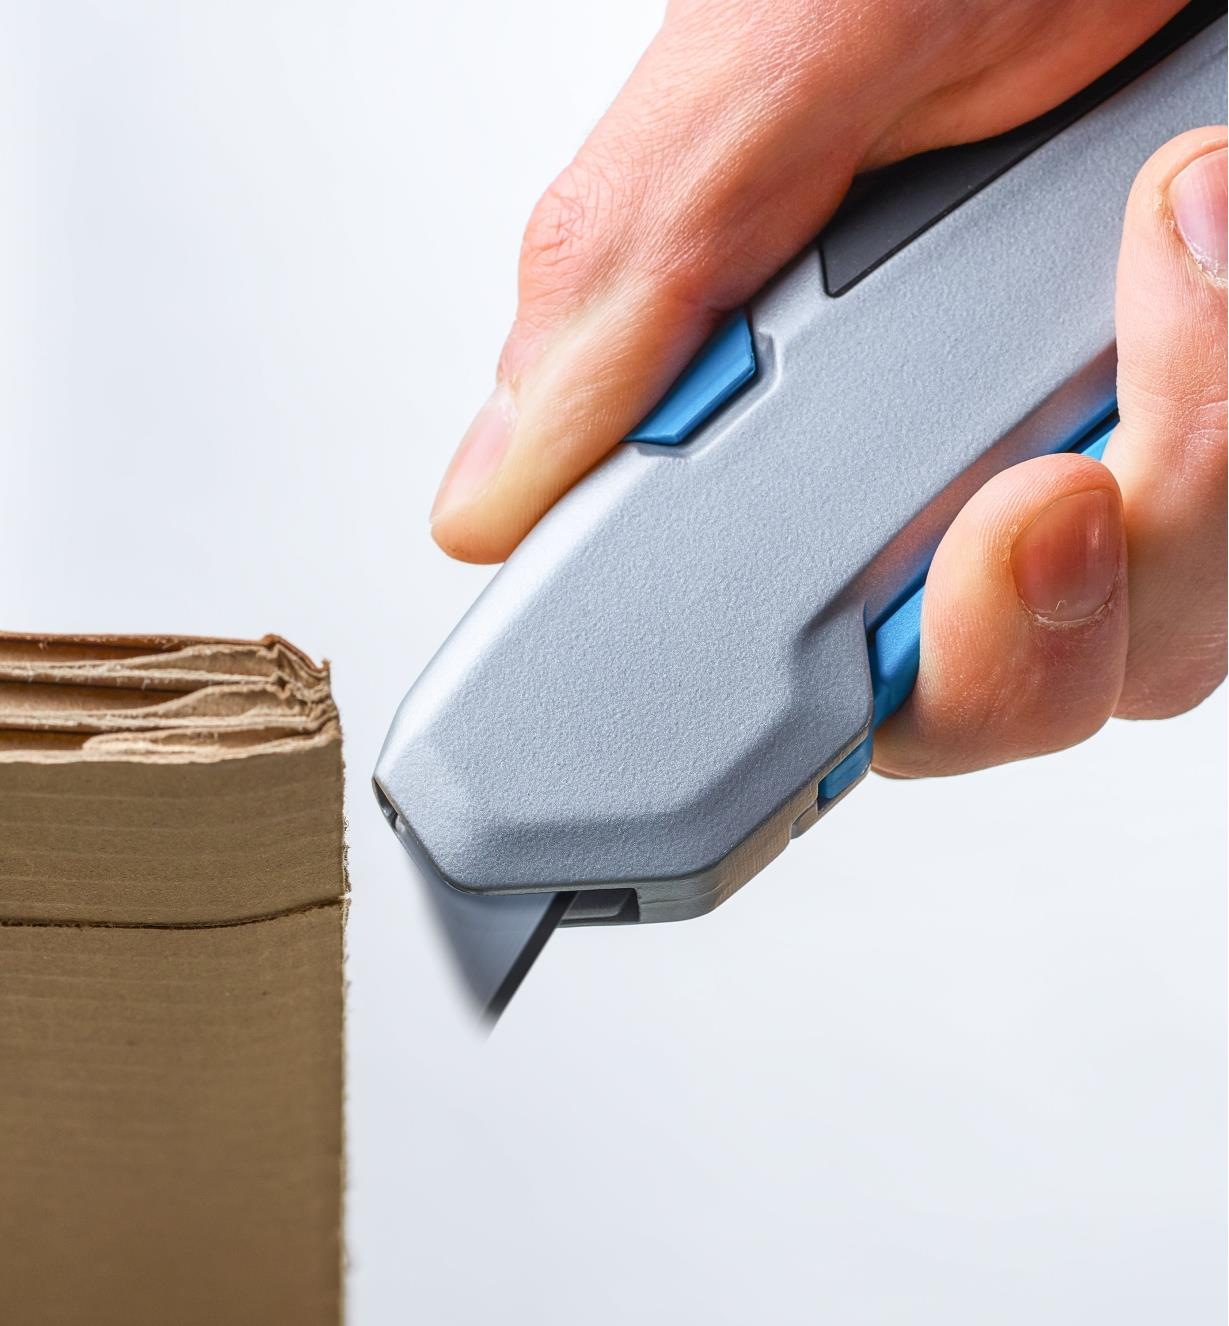 Safety utility knife blade automatically retracting after slicing thick cardboard